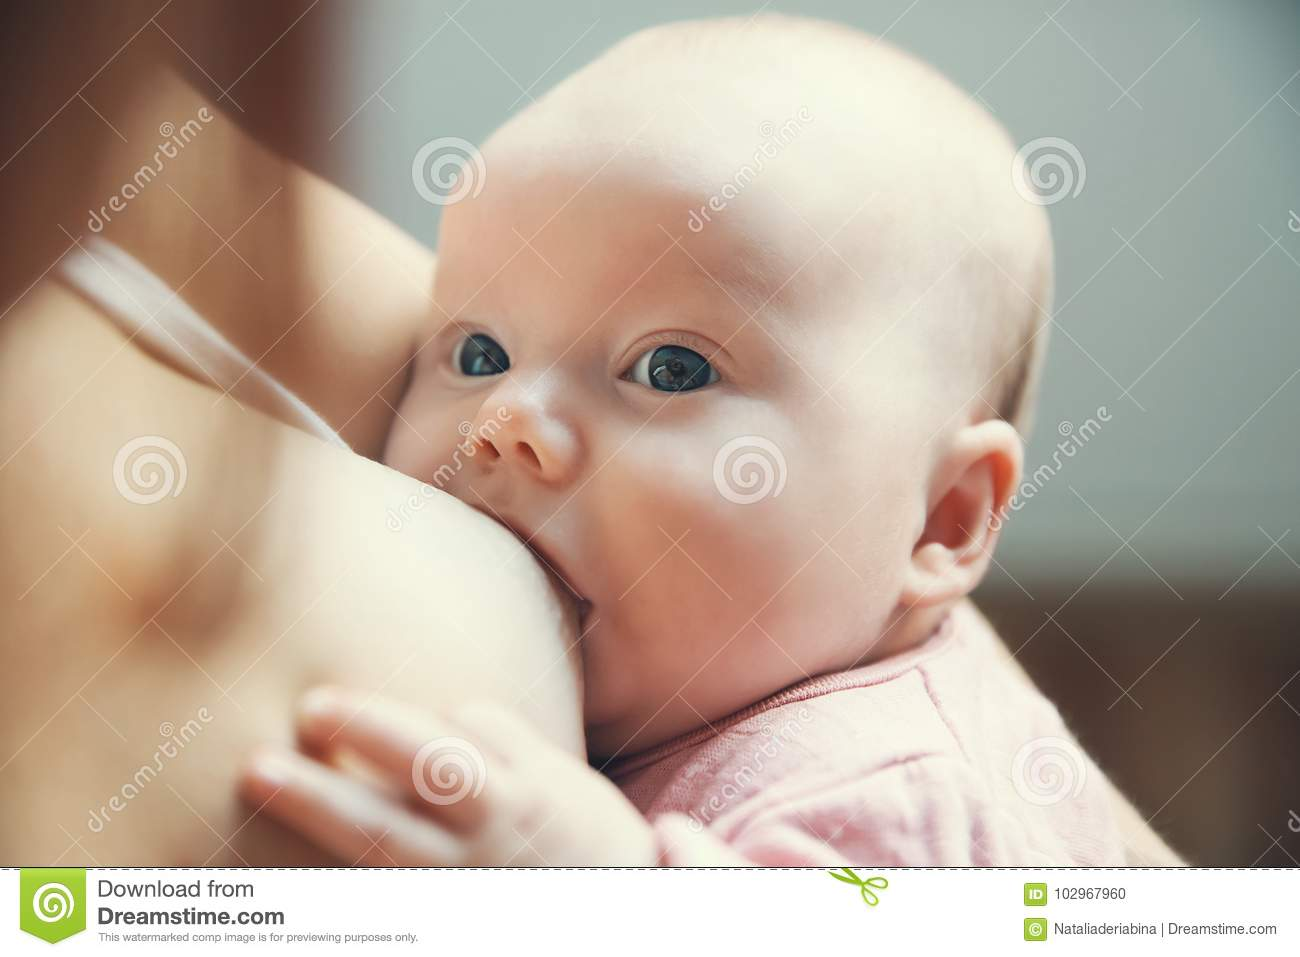 Download Mother Breastfeeding Newborn Baby Child Stock Photo - Image of looking, maternity: 102967960